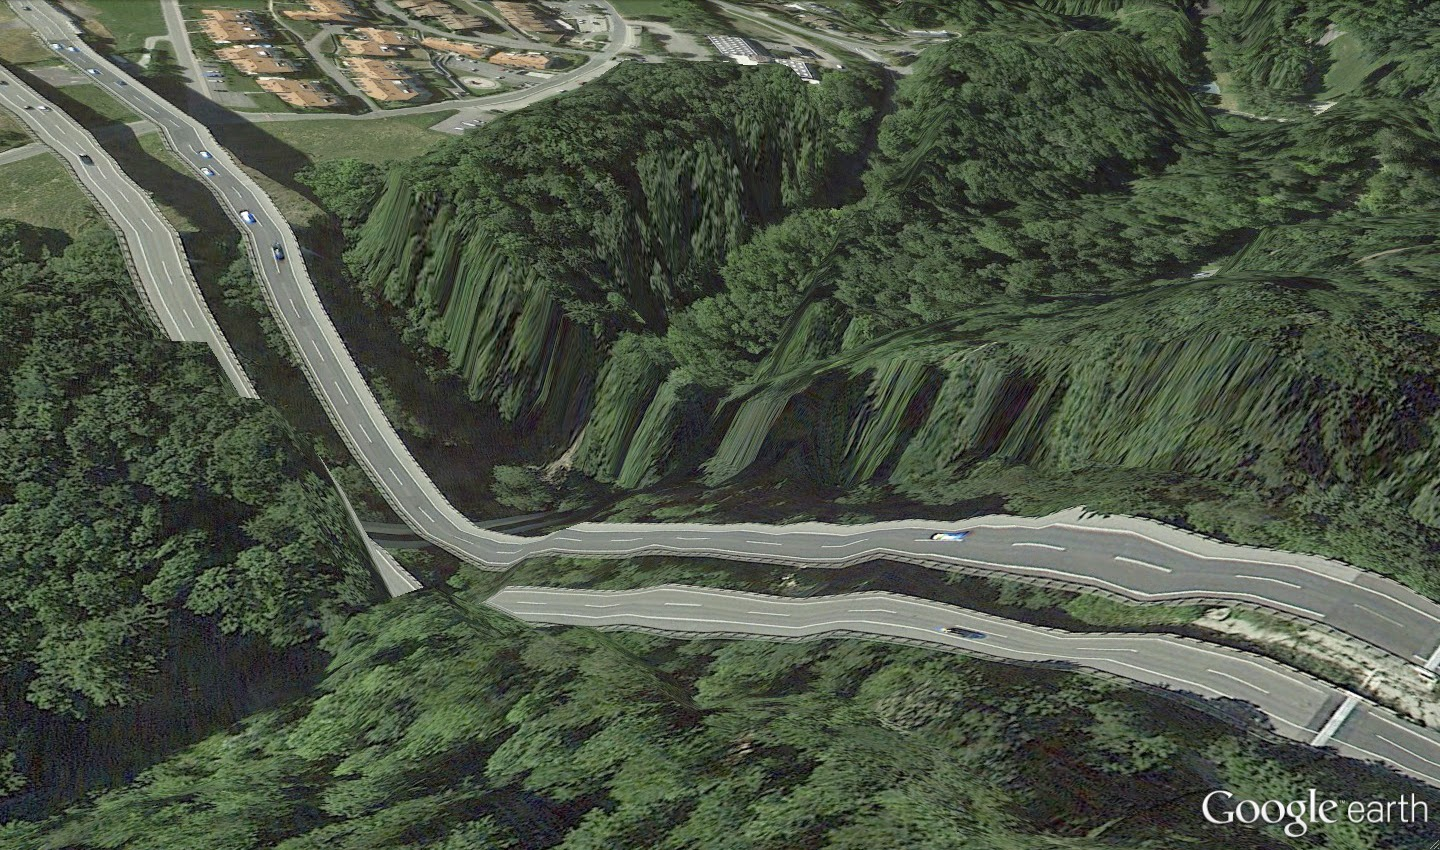 20-Switzerland-Clement-Valla-Postcards-From-Google-Earth-www-designstack-co